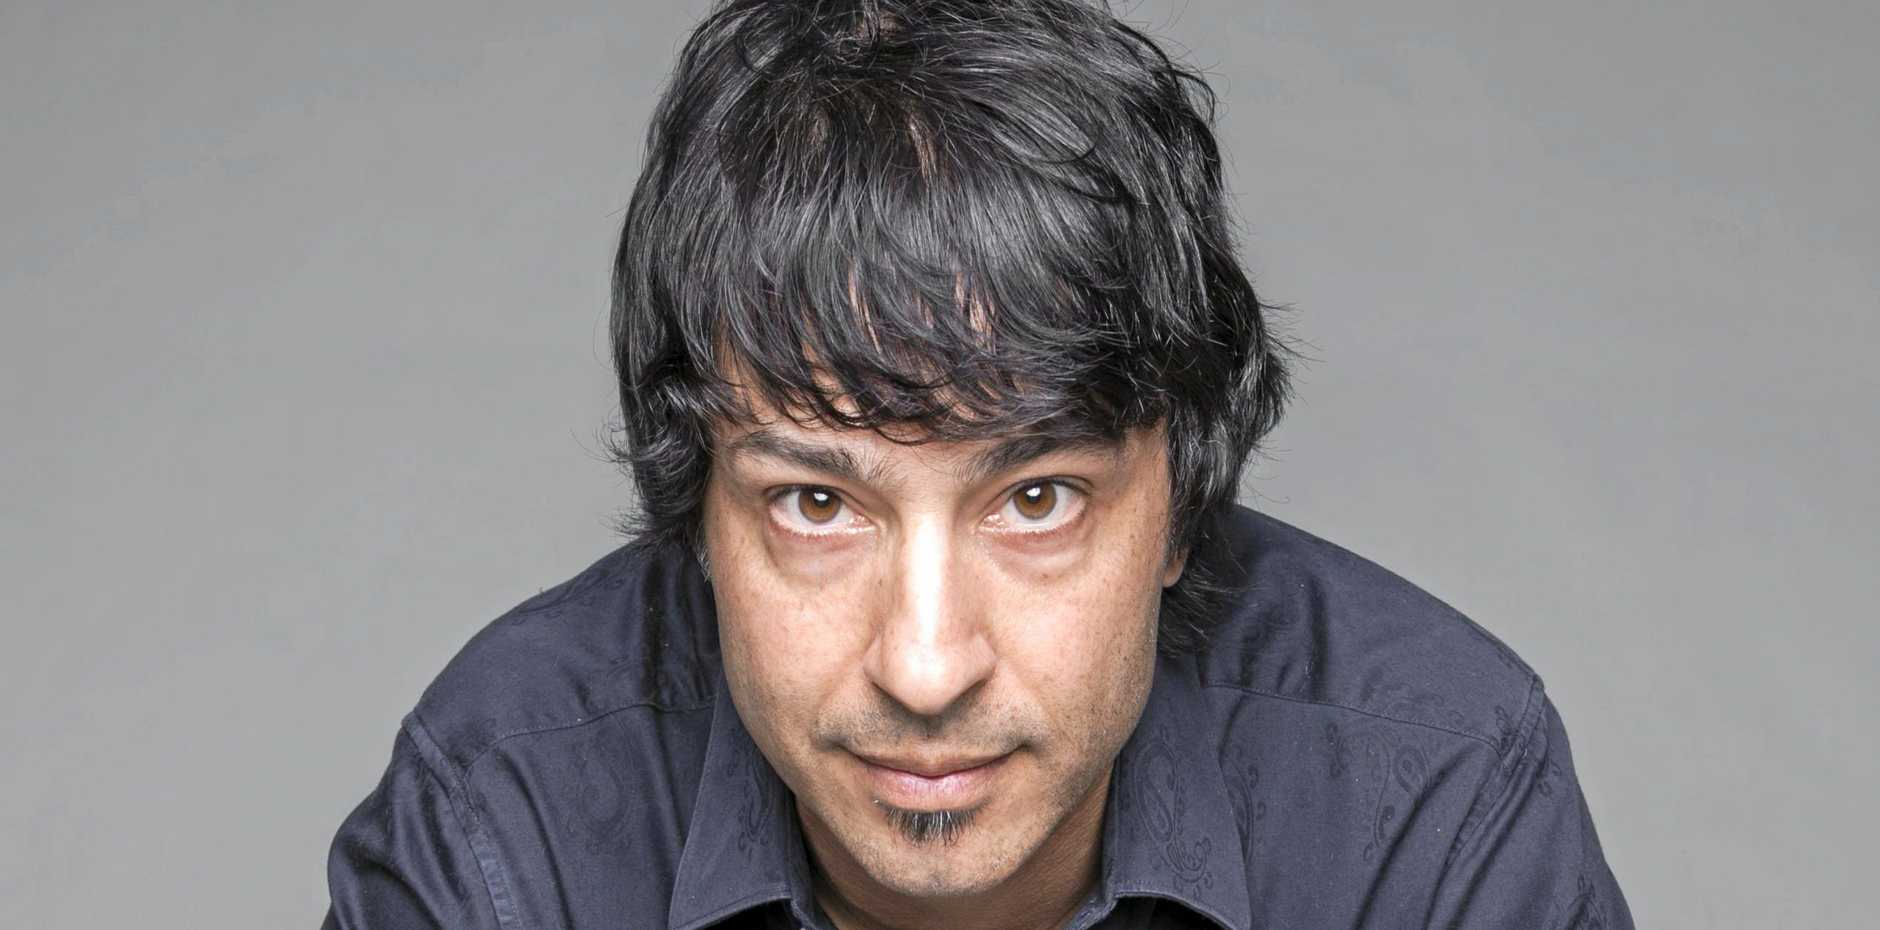 COMEDY: Arj Barker is coming to the MECC in September with his new show We Need to Talk.